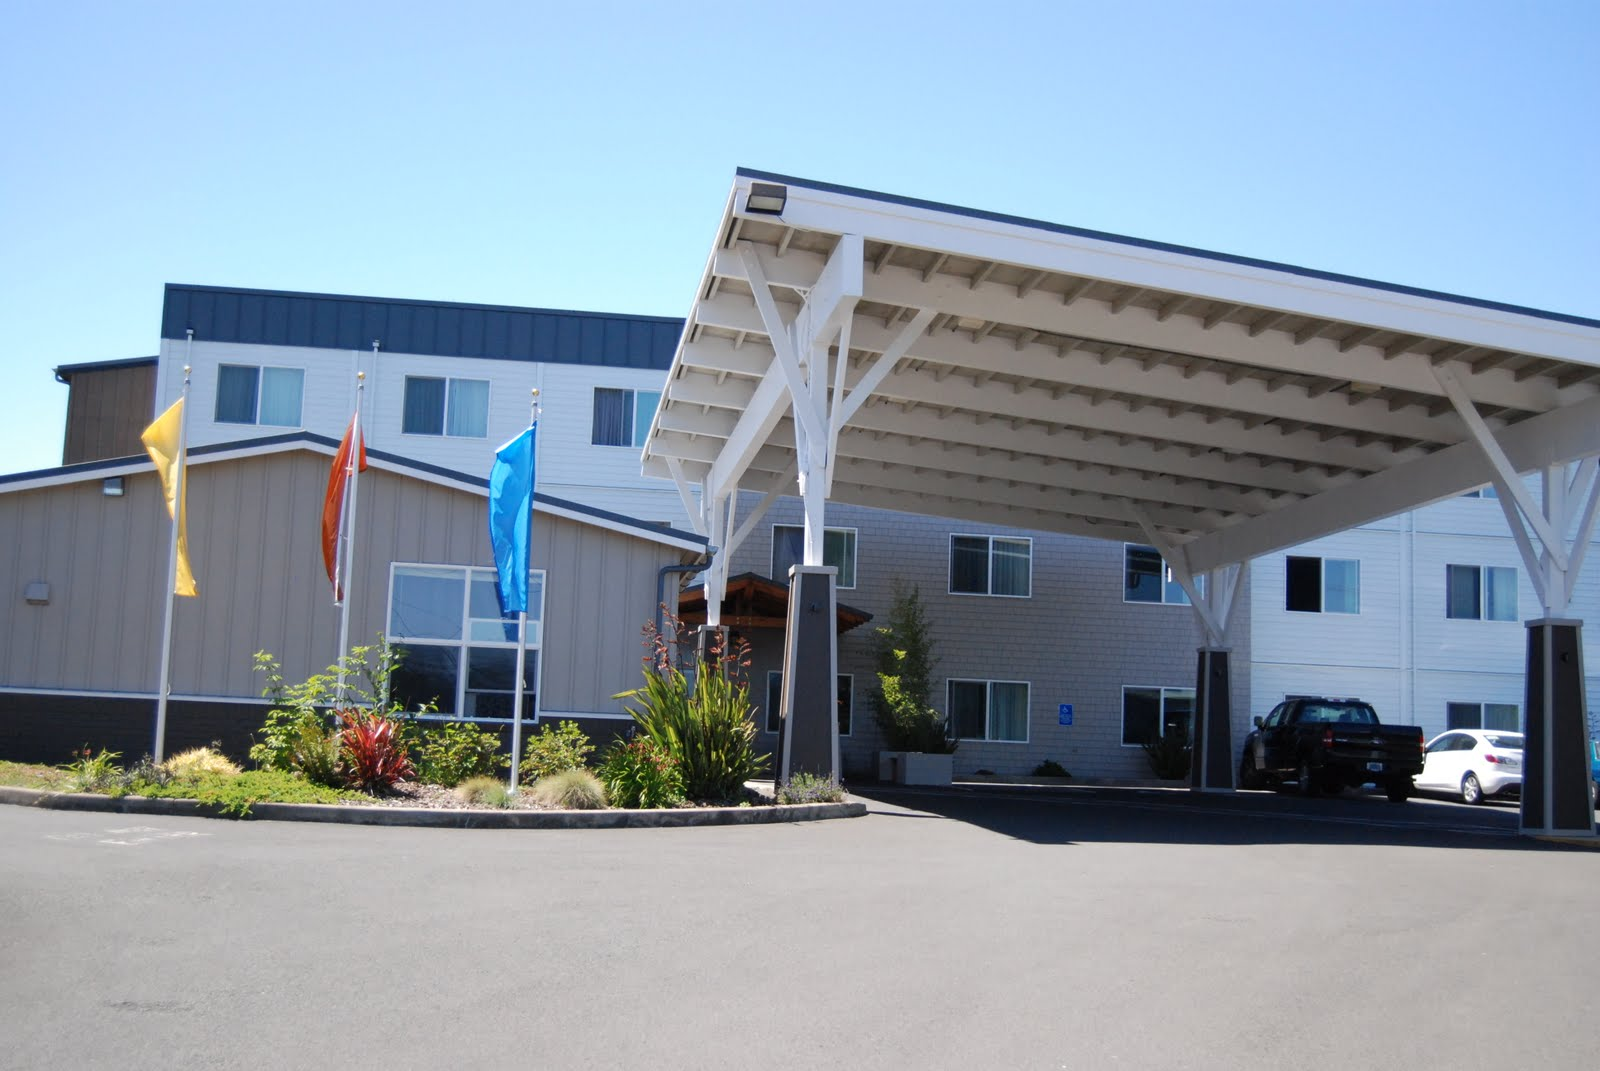 hotels information best hotel sands suites city in plus oceanfront image coast featured western z oregon north lincoln